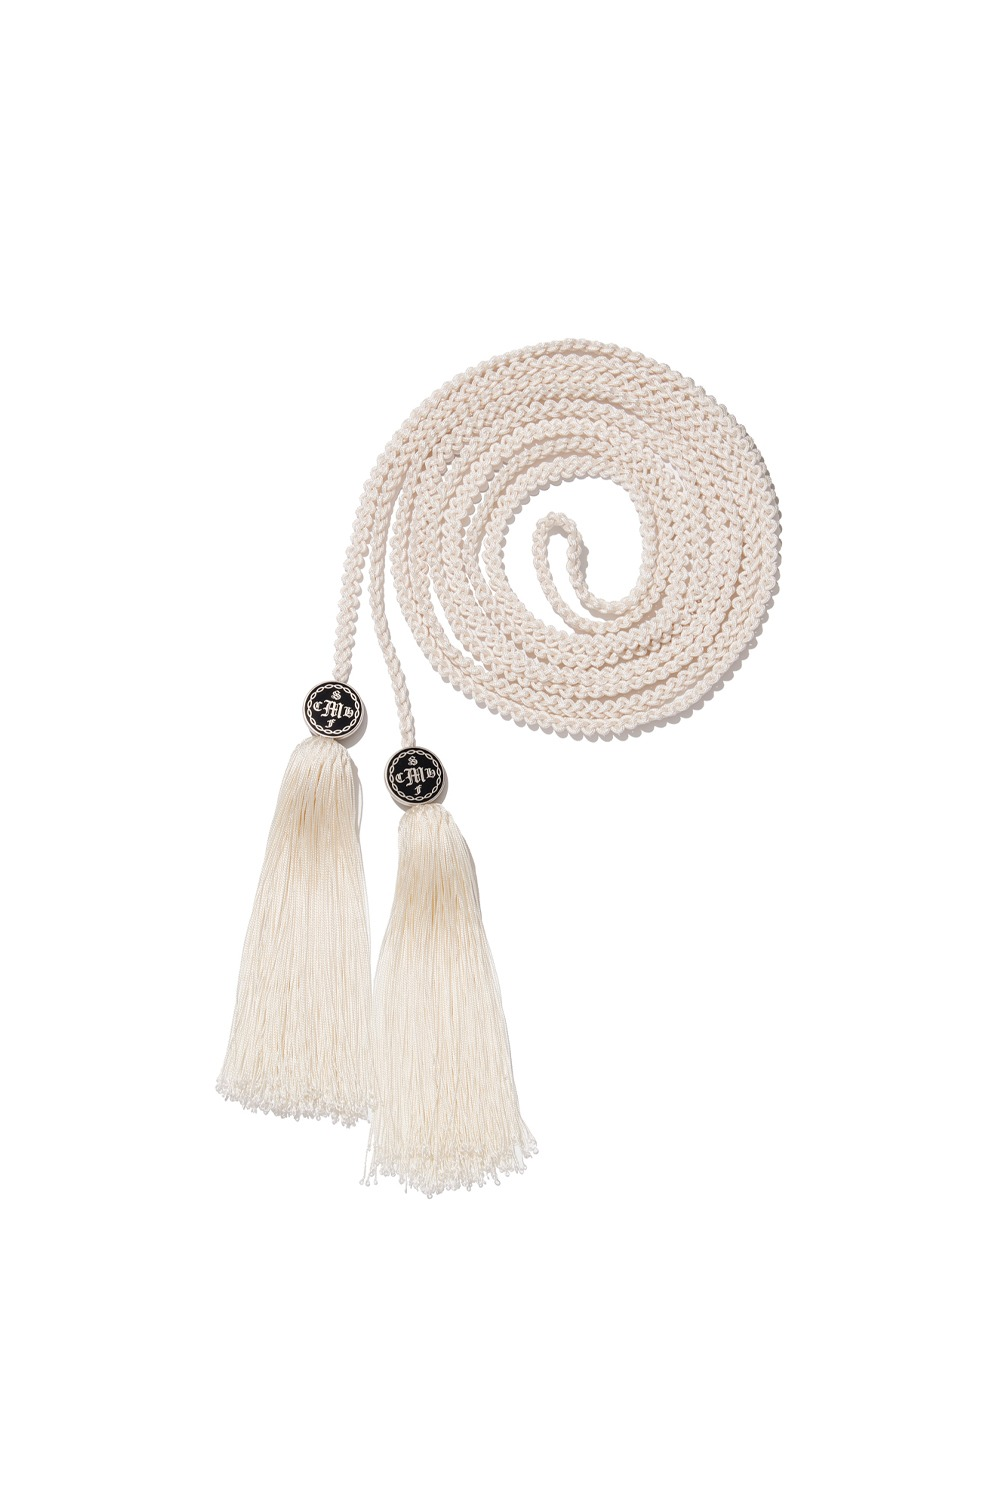 PROJECT MAGO_TASSEL STRAP_WHITE